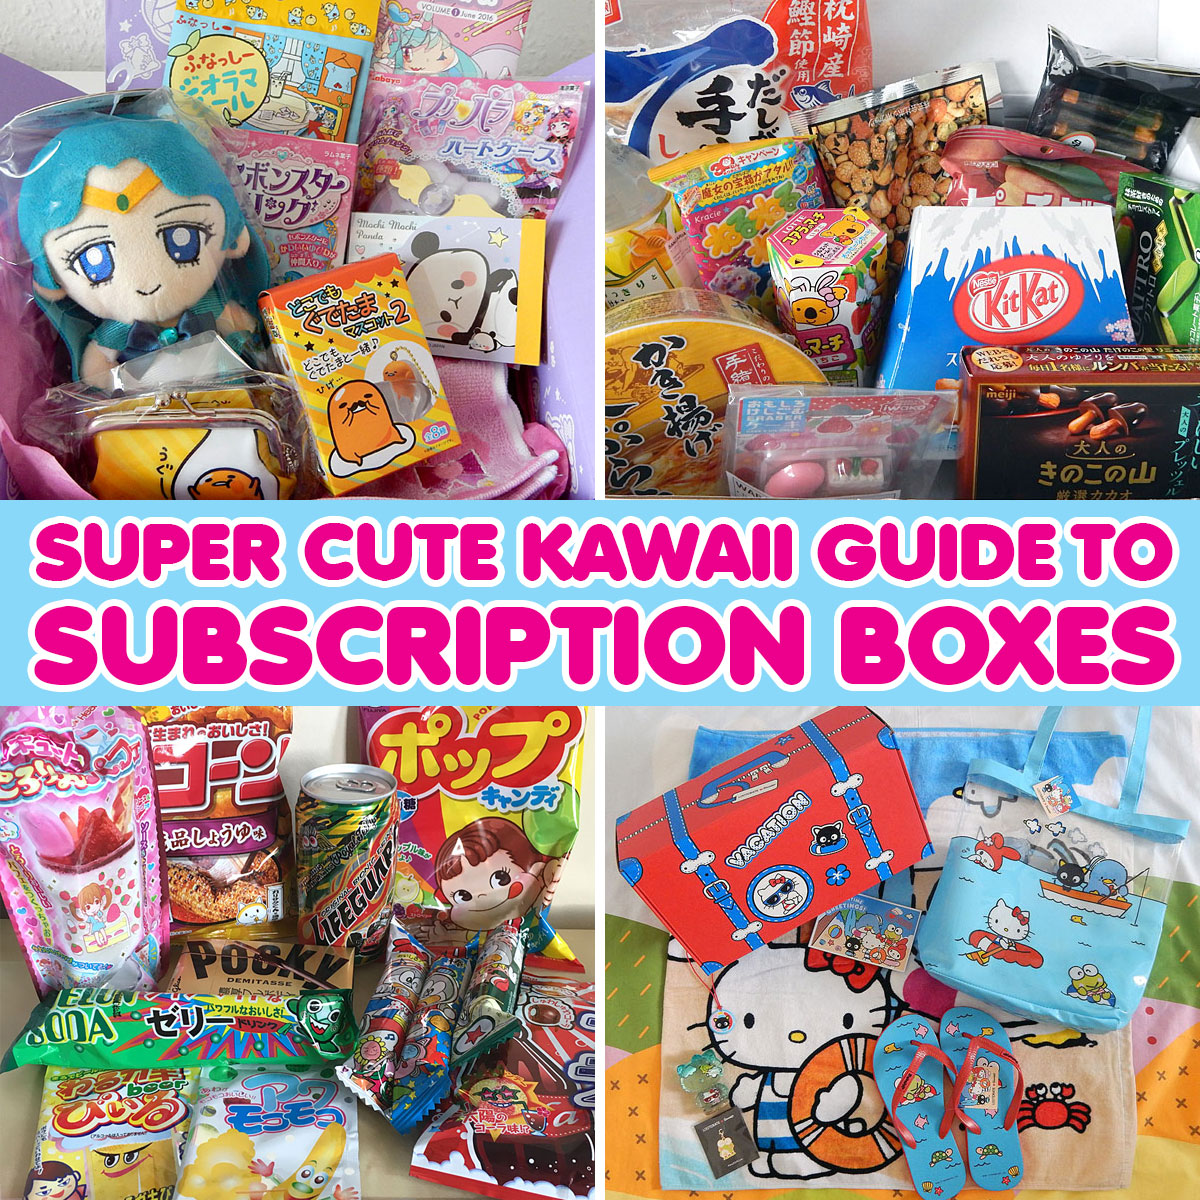 Super Cute Kawaii Guide to Subscription Boxes